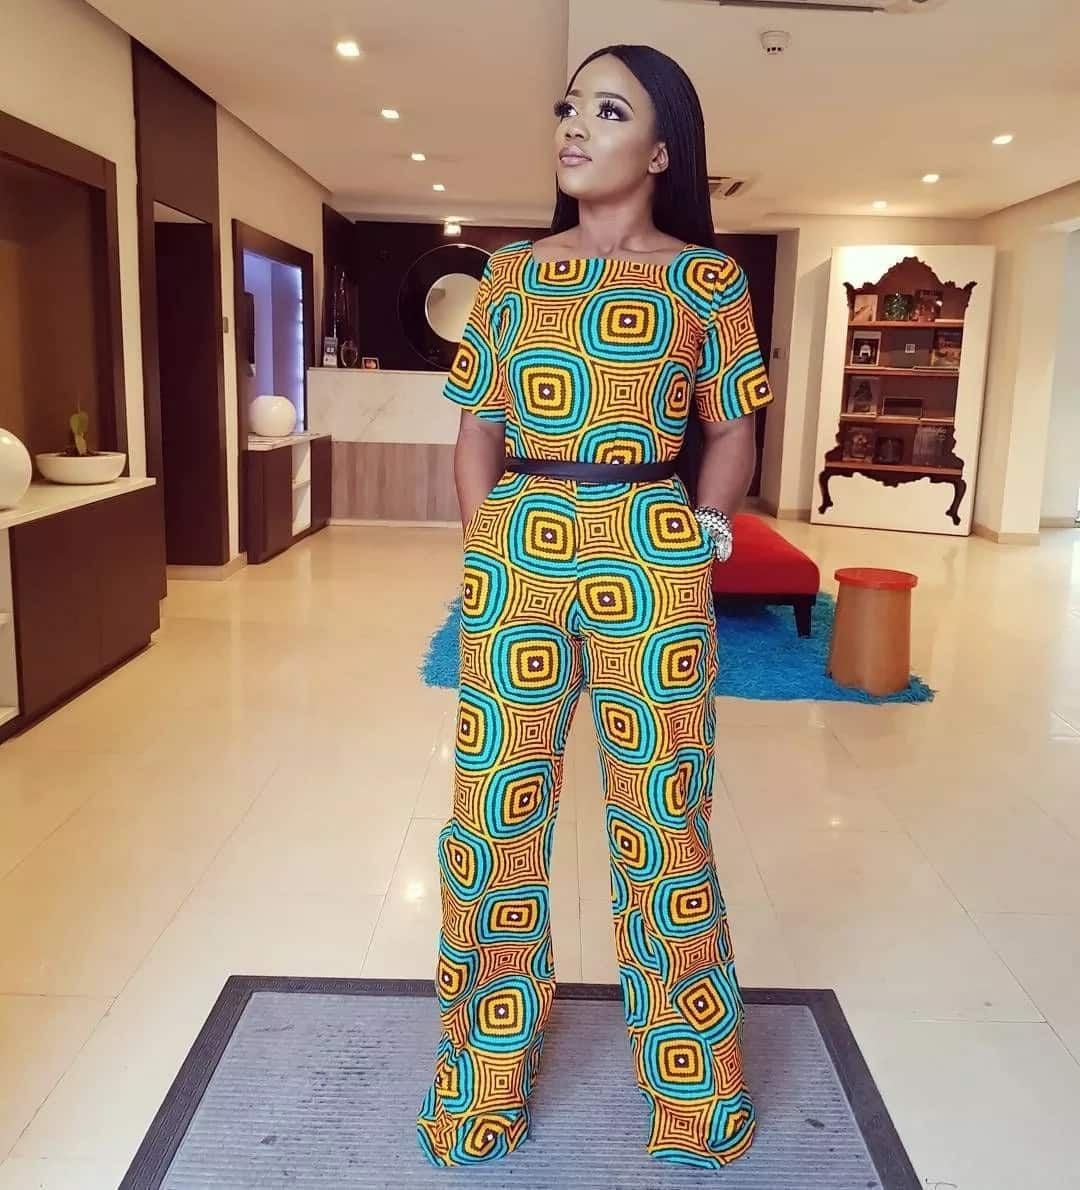 d3c19533dbe Latest jumpsuit styles in 2018 ▷ Legit.ng